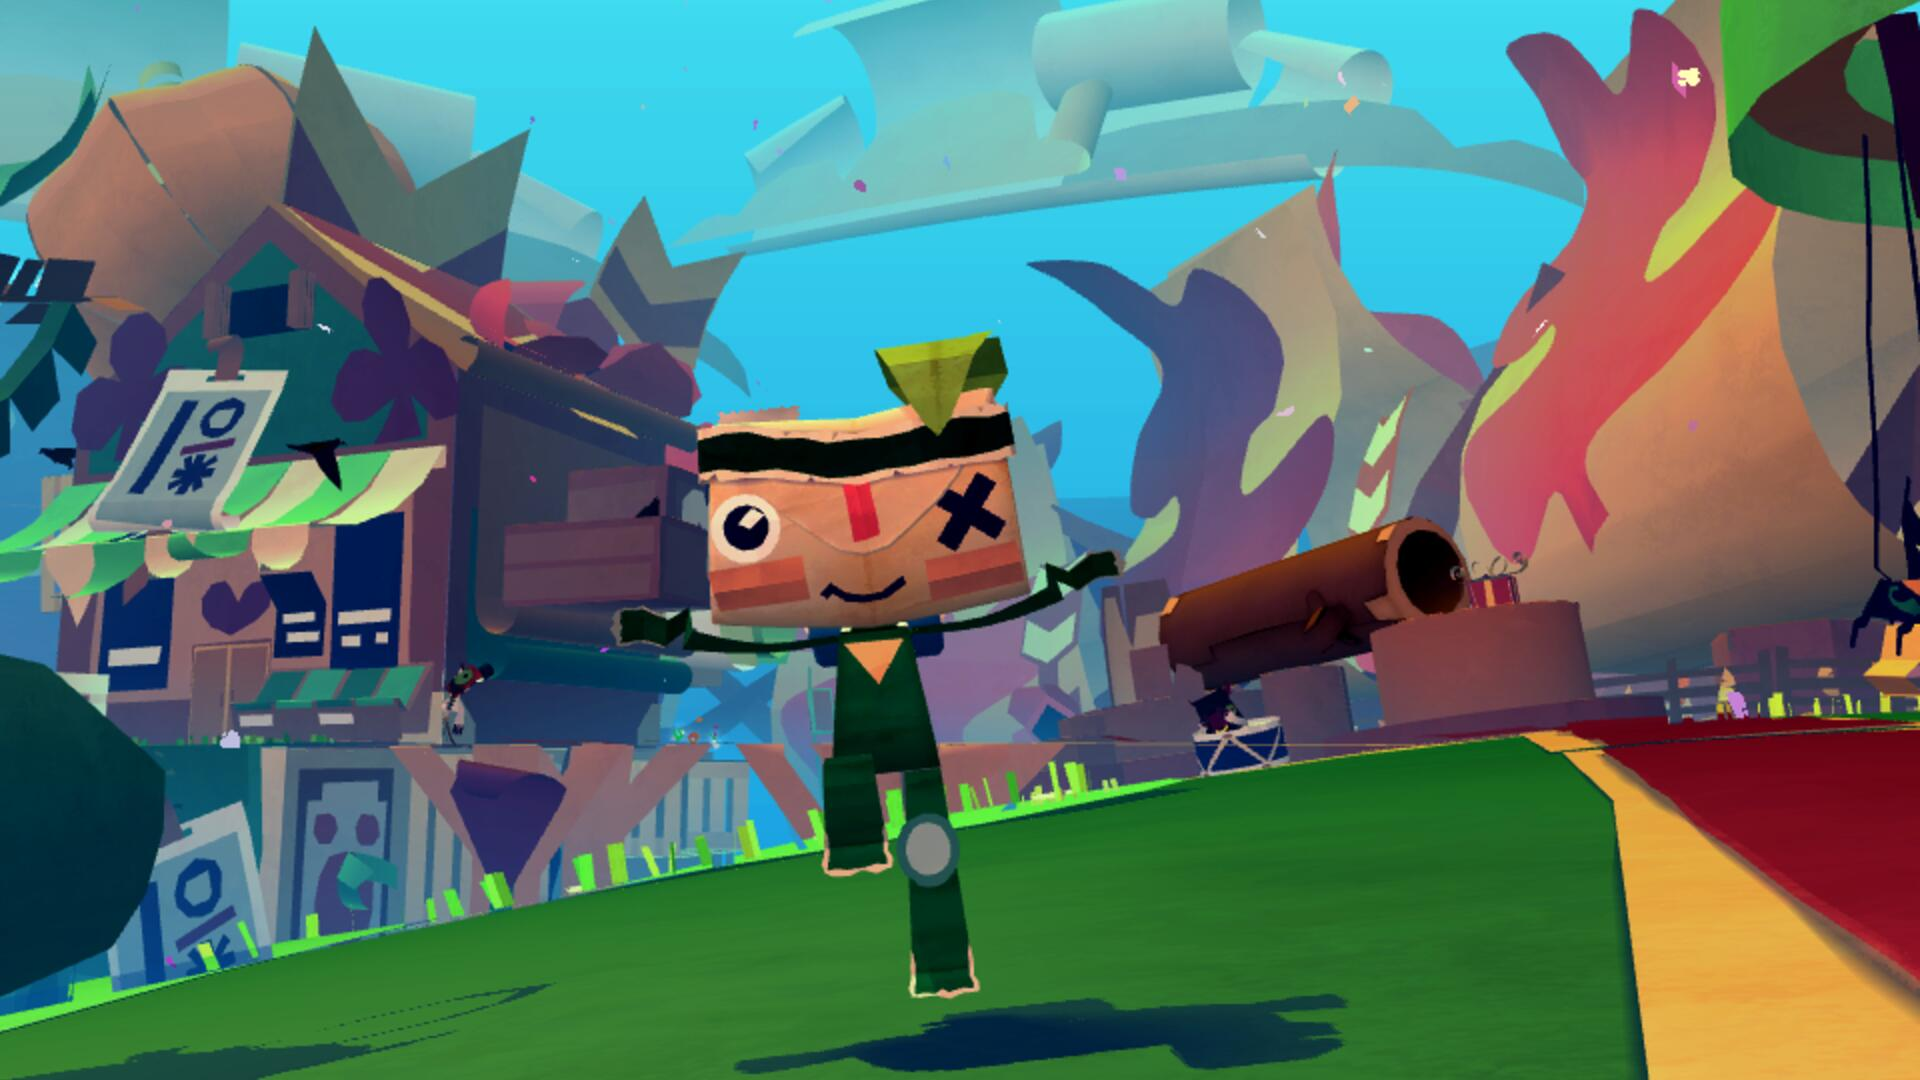 Tearaway PS Vita Review: Giddily in Love With a Squishy Papercraft World